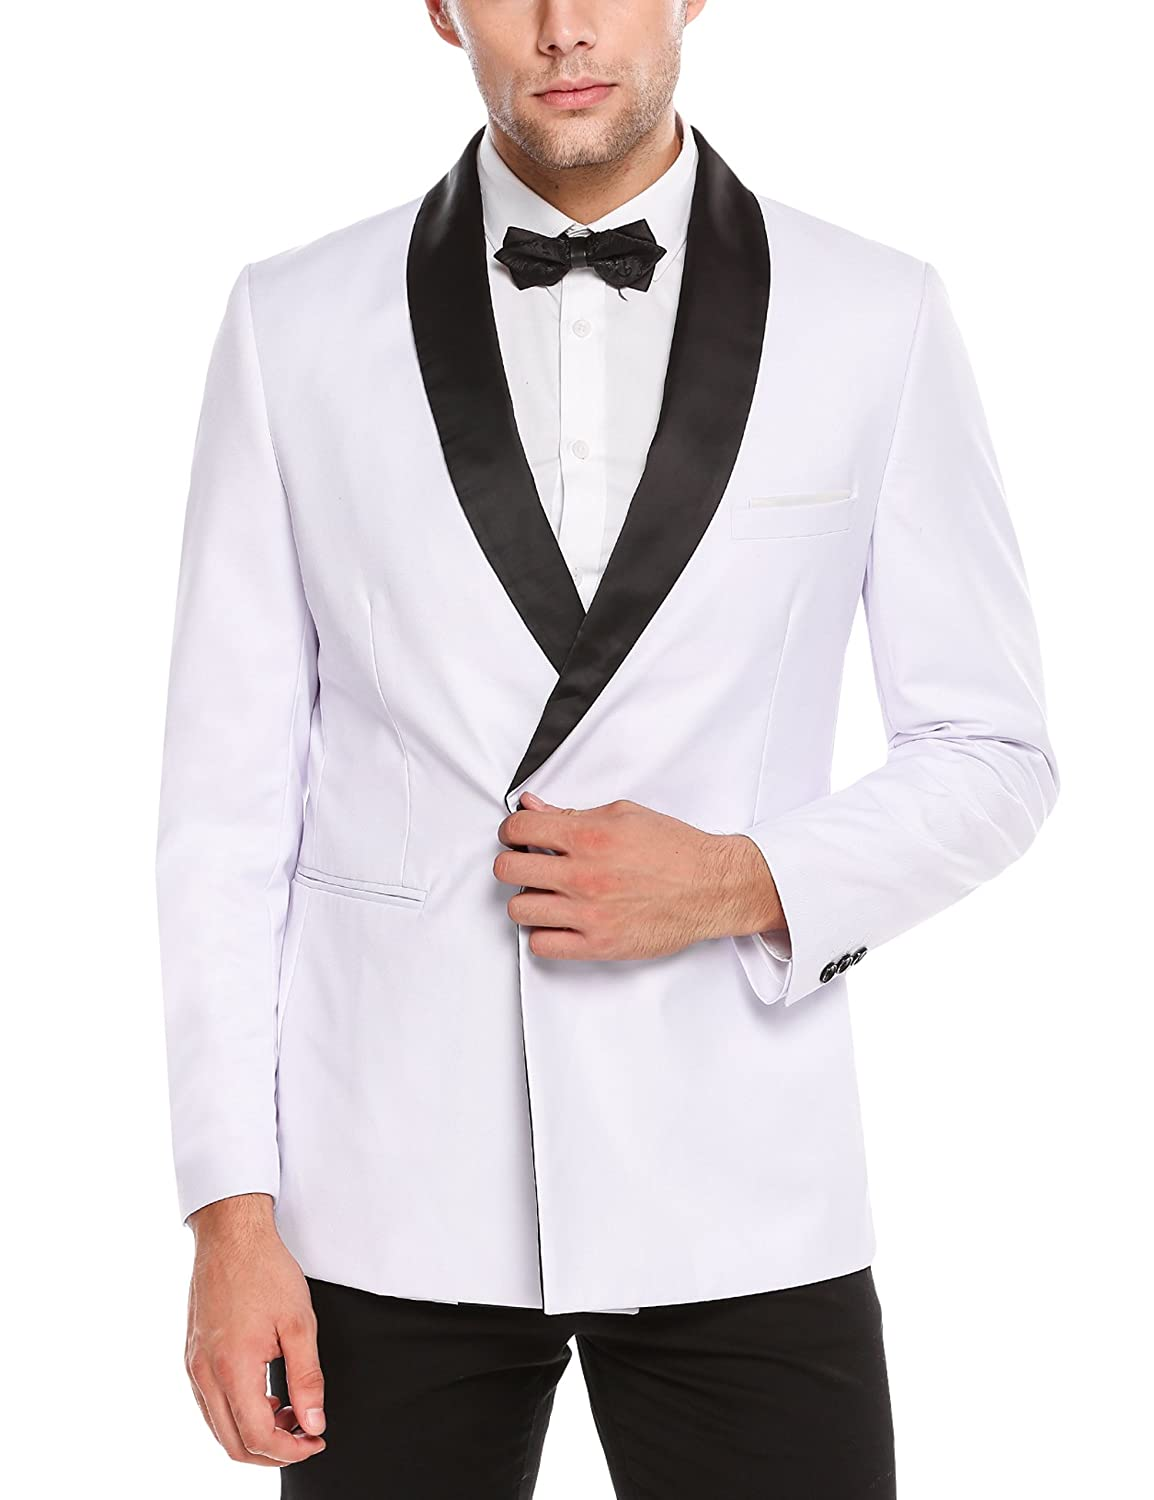 65af95e1e619 Top 10 wholesale White Double Breasted Blazer. Wholesale clothing